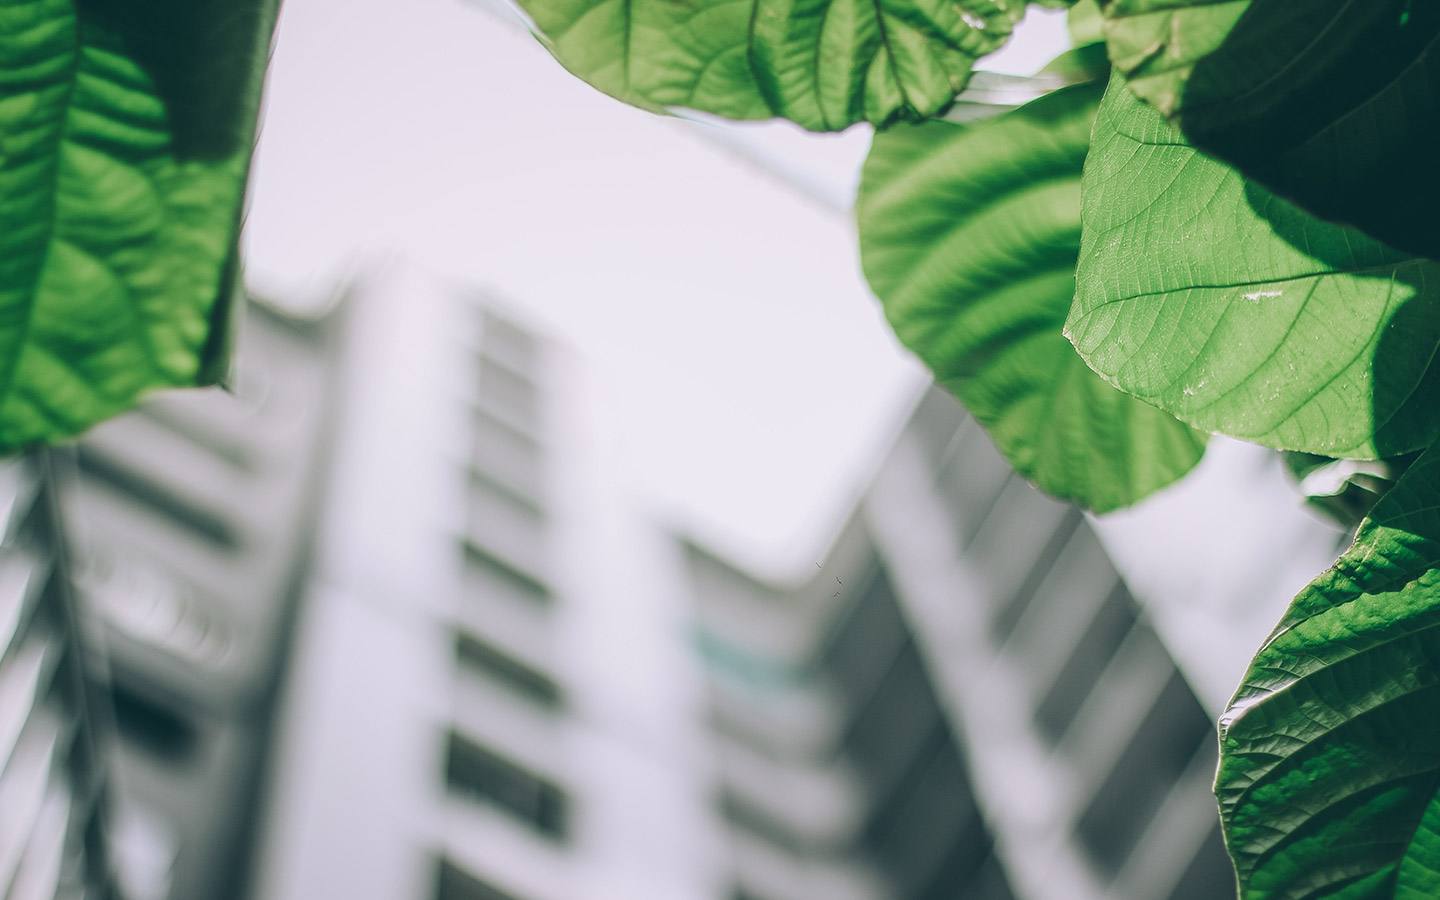 Green building standards: five tips to help you meet the requirements